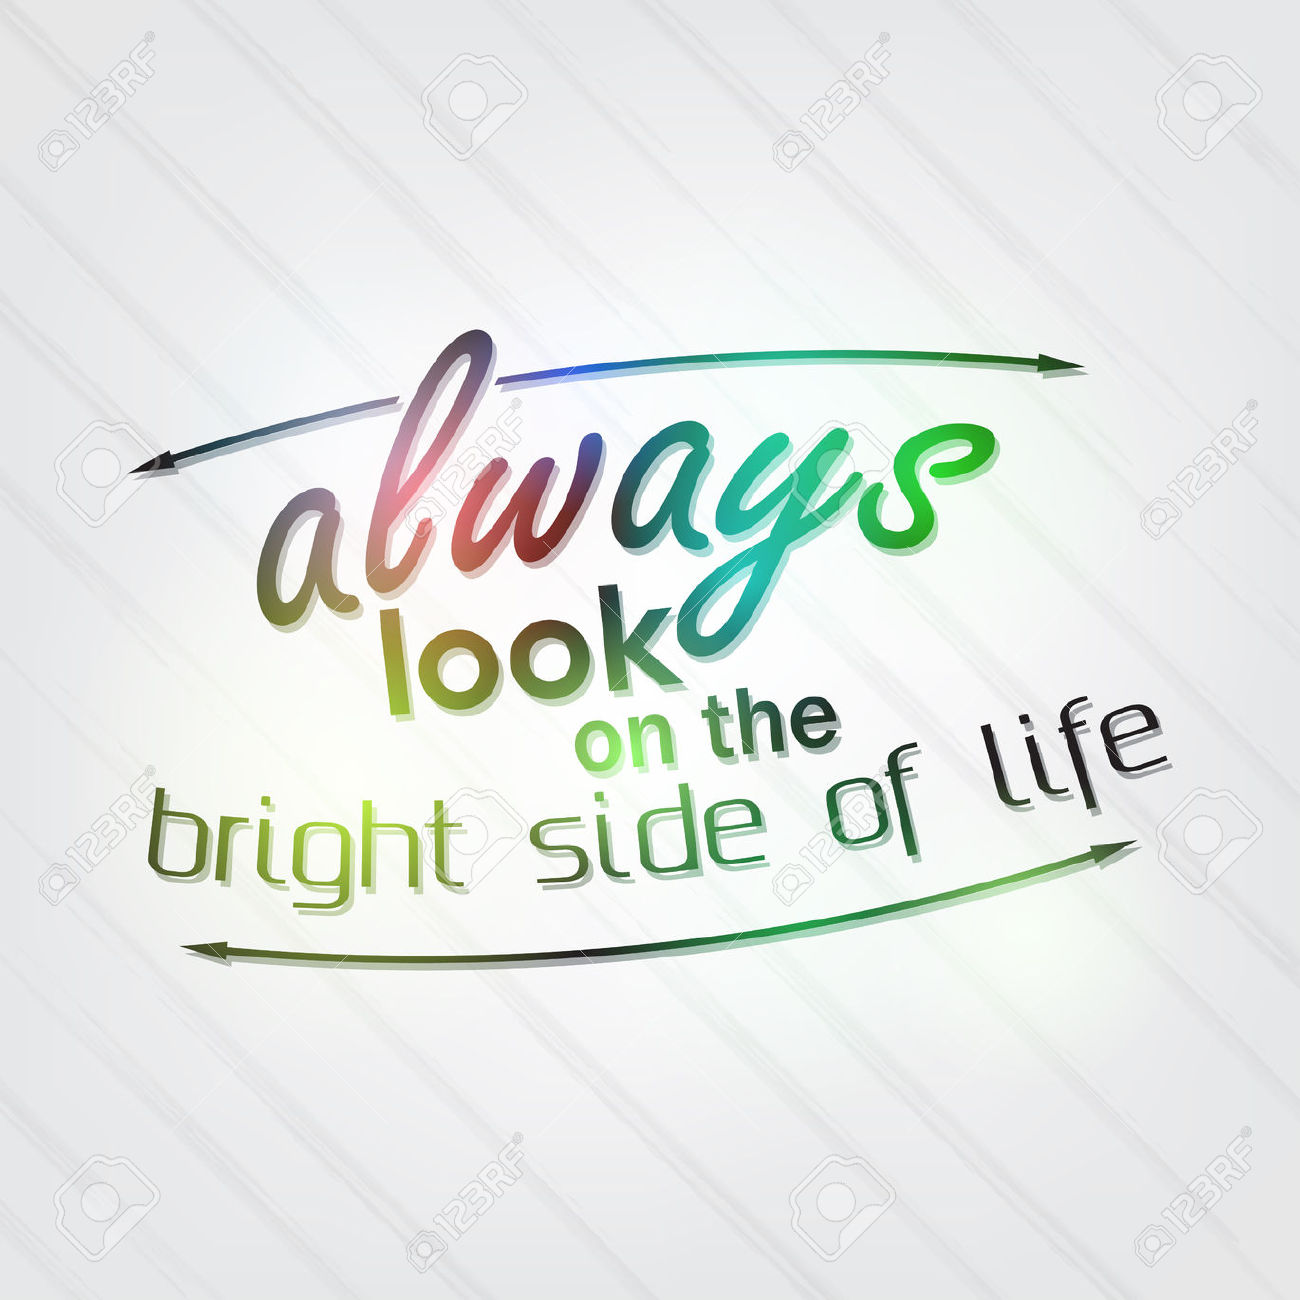 Always Look On The Bright Side Of Life. Motivational Background.